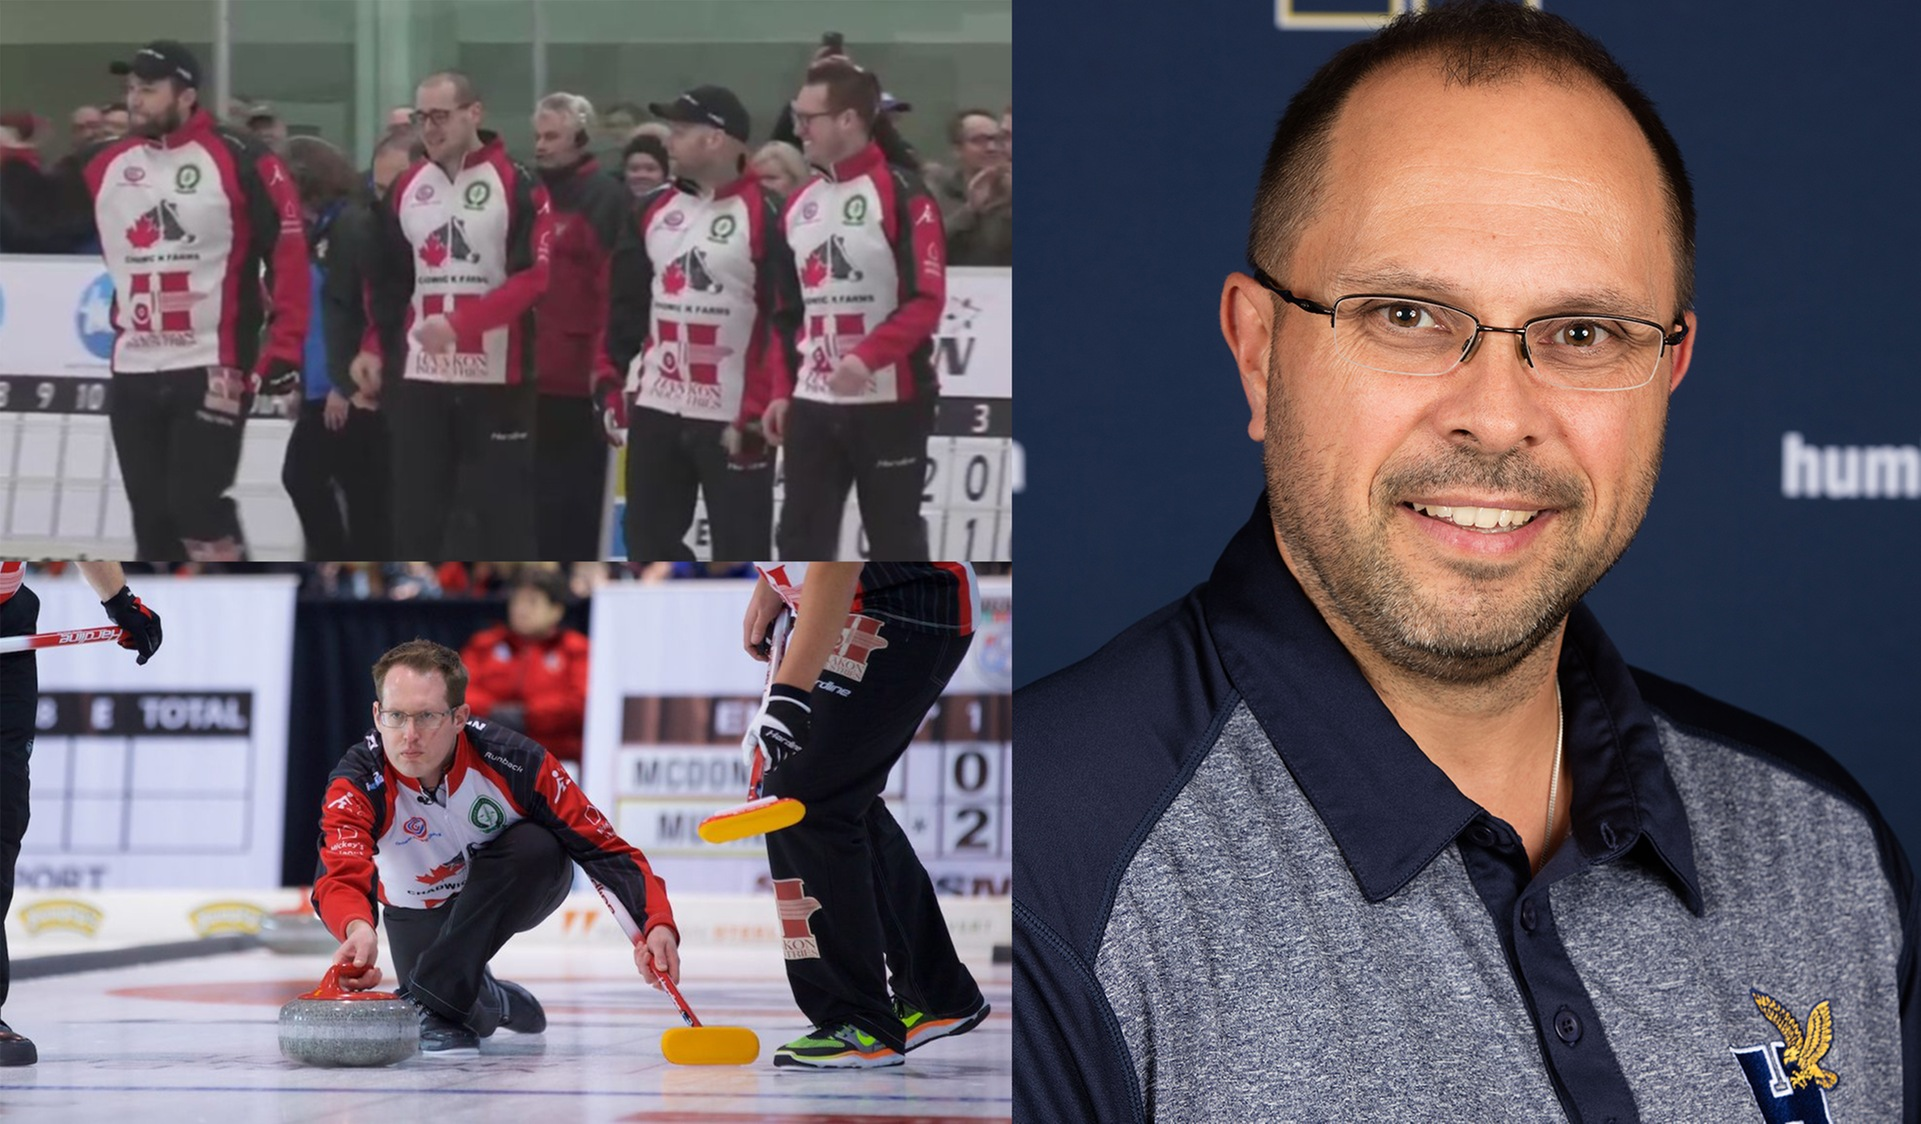 HAWKS TURRIFF COACHES TEAM MCDONALD TO ONTARIO TITLE & TRIP TO THE BRIER